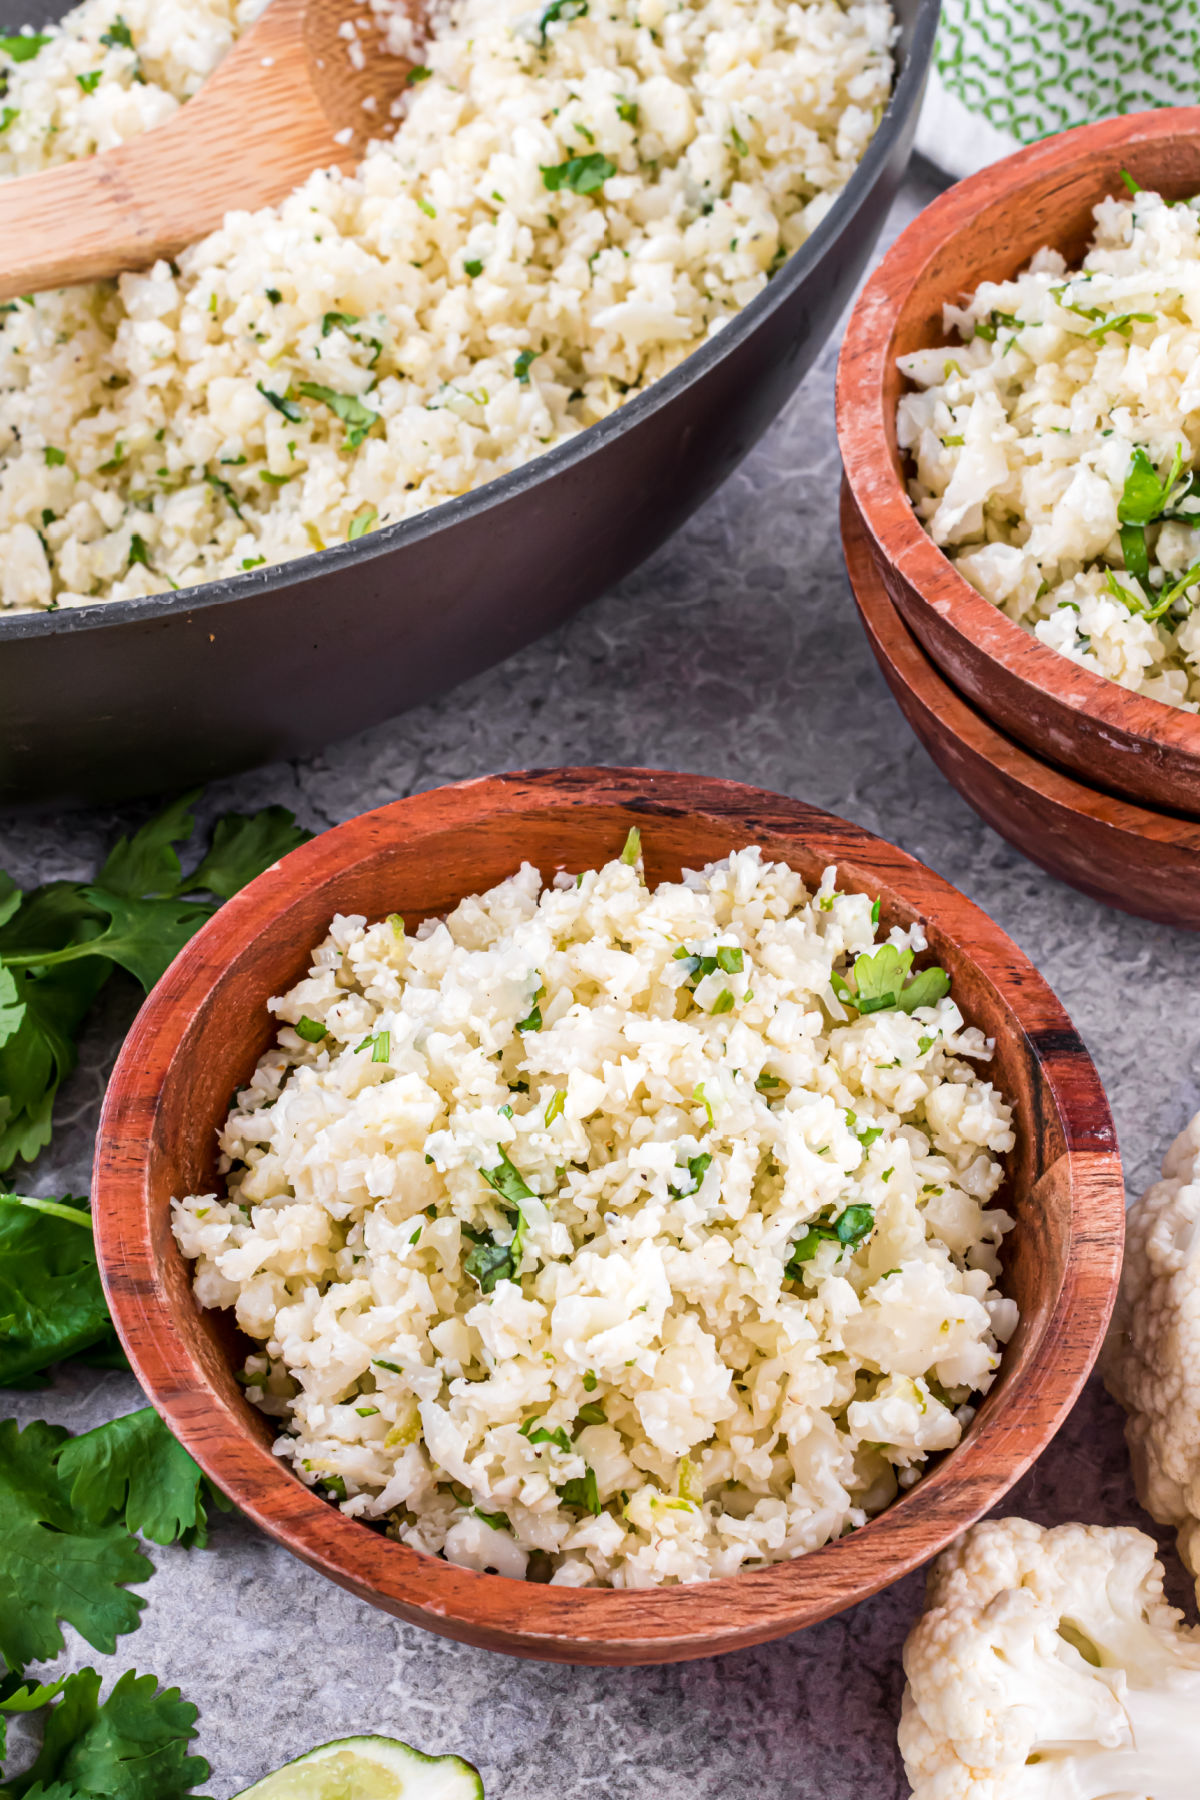 Cauliflower rice with cilantro lime in a wooden bowl.